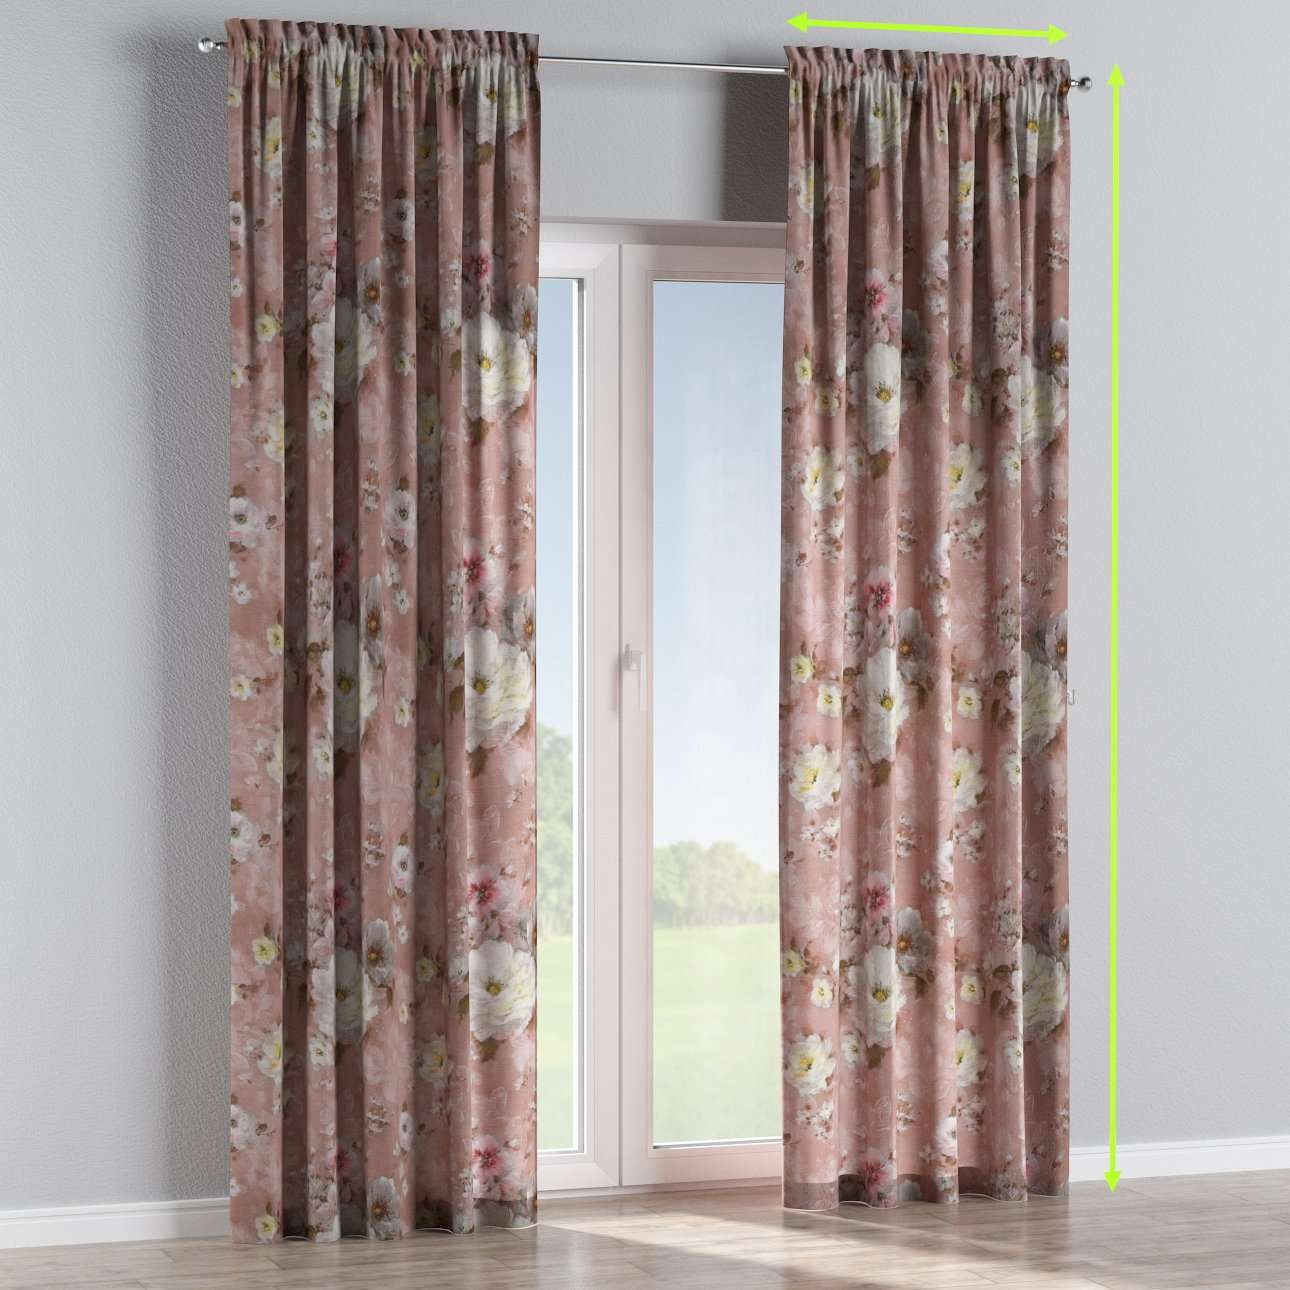 Slot and frill curtains in collection Monet, fabric: 137-83